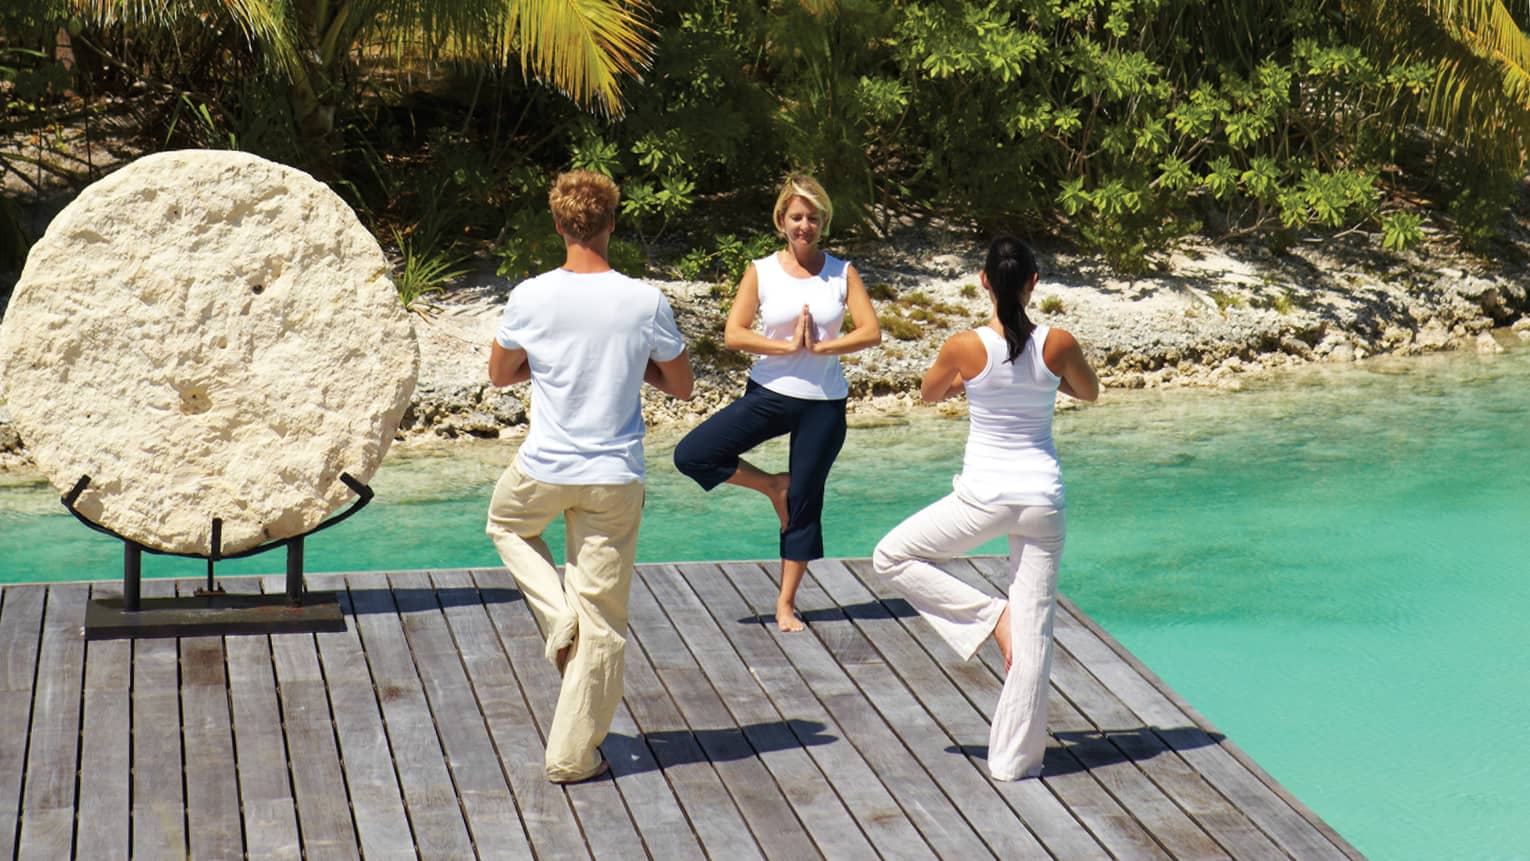 Man and two women in yoga poses on dock, standing on one leg with hands in prayer